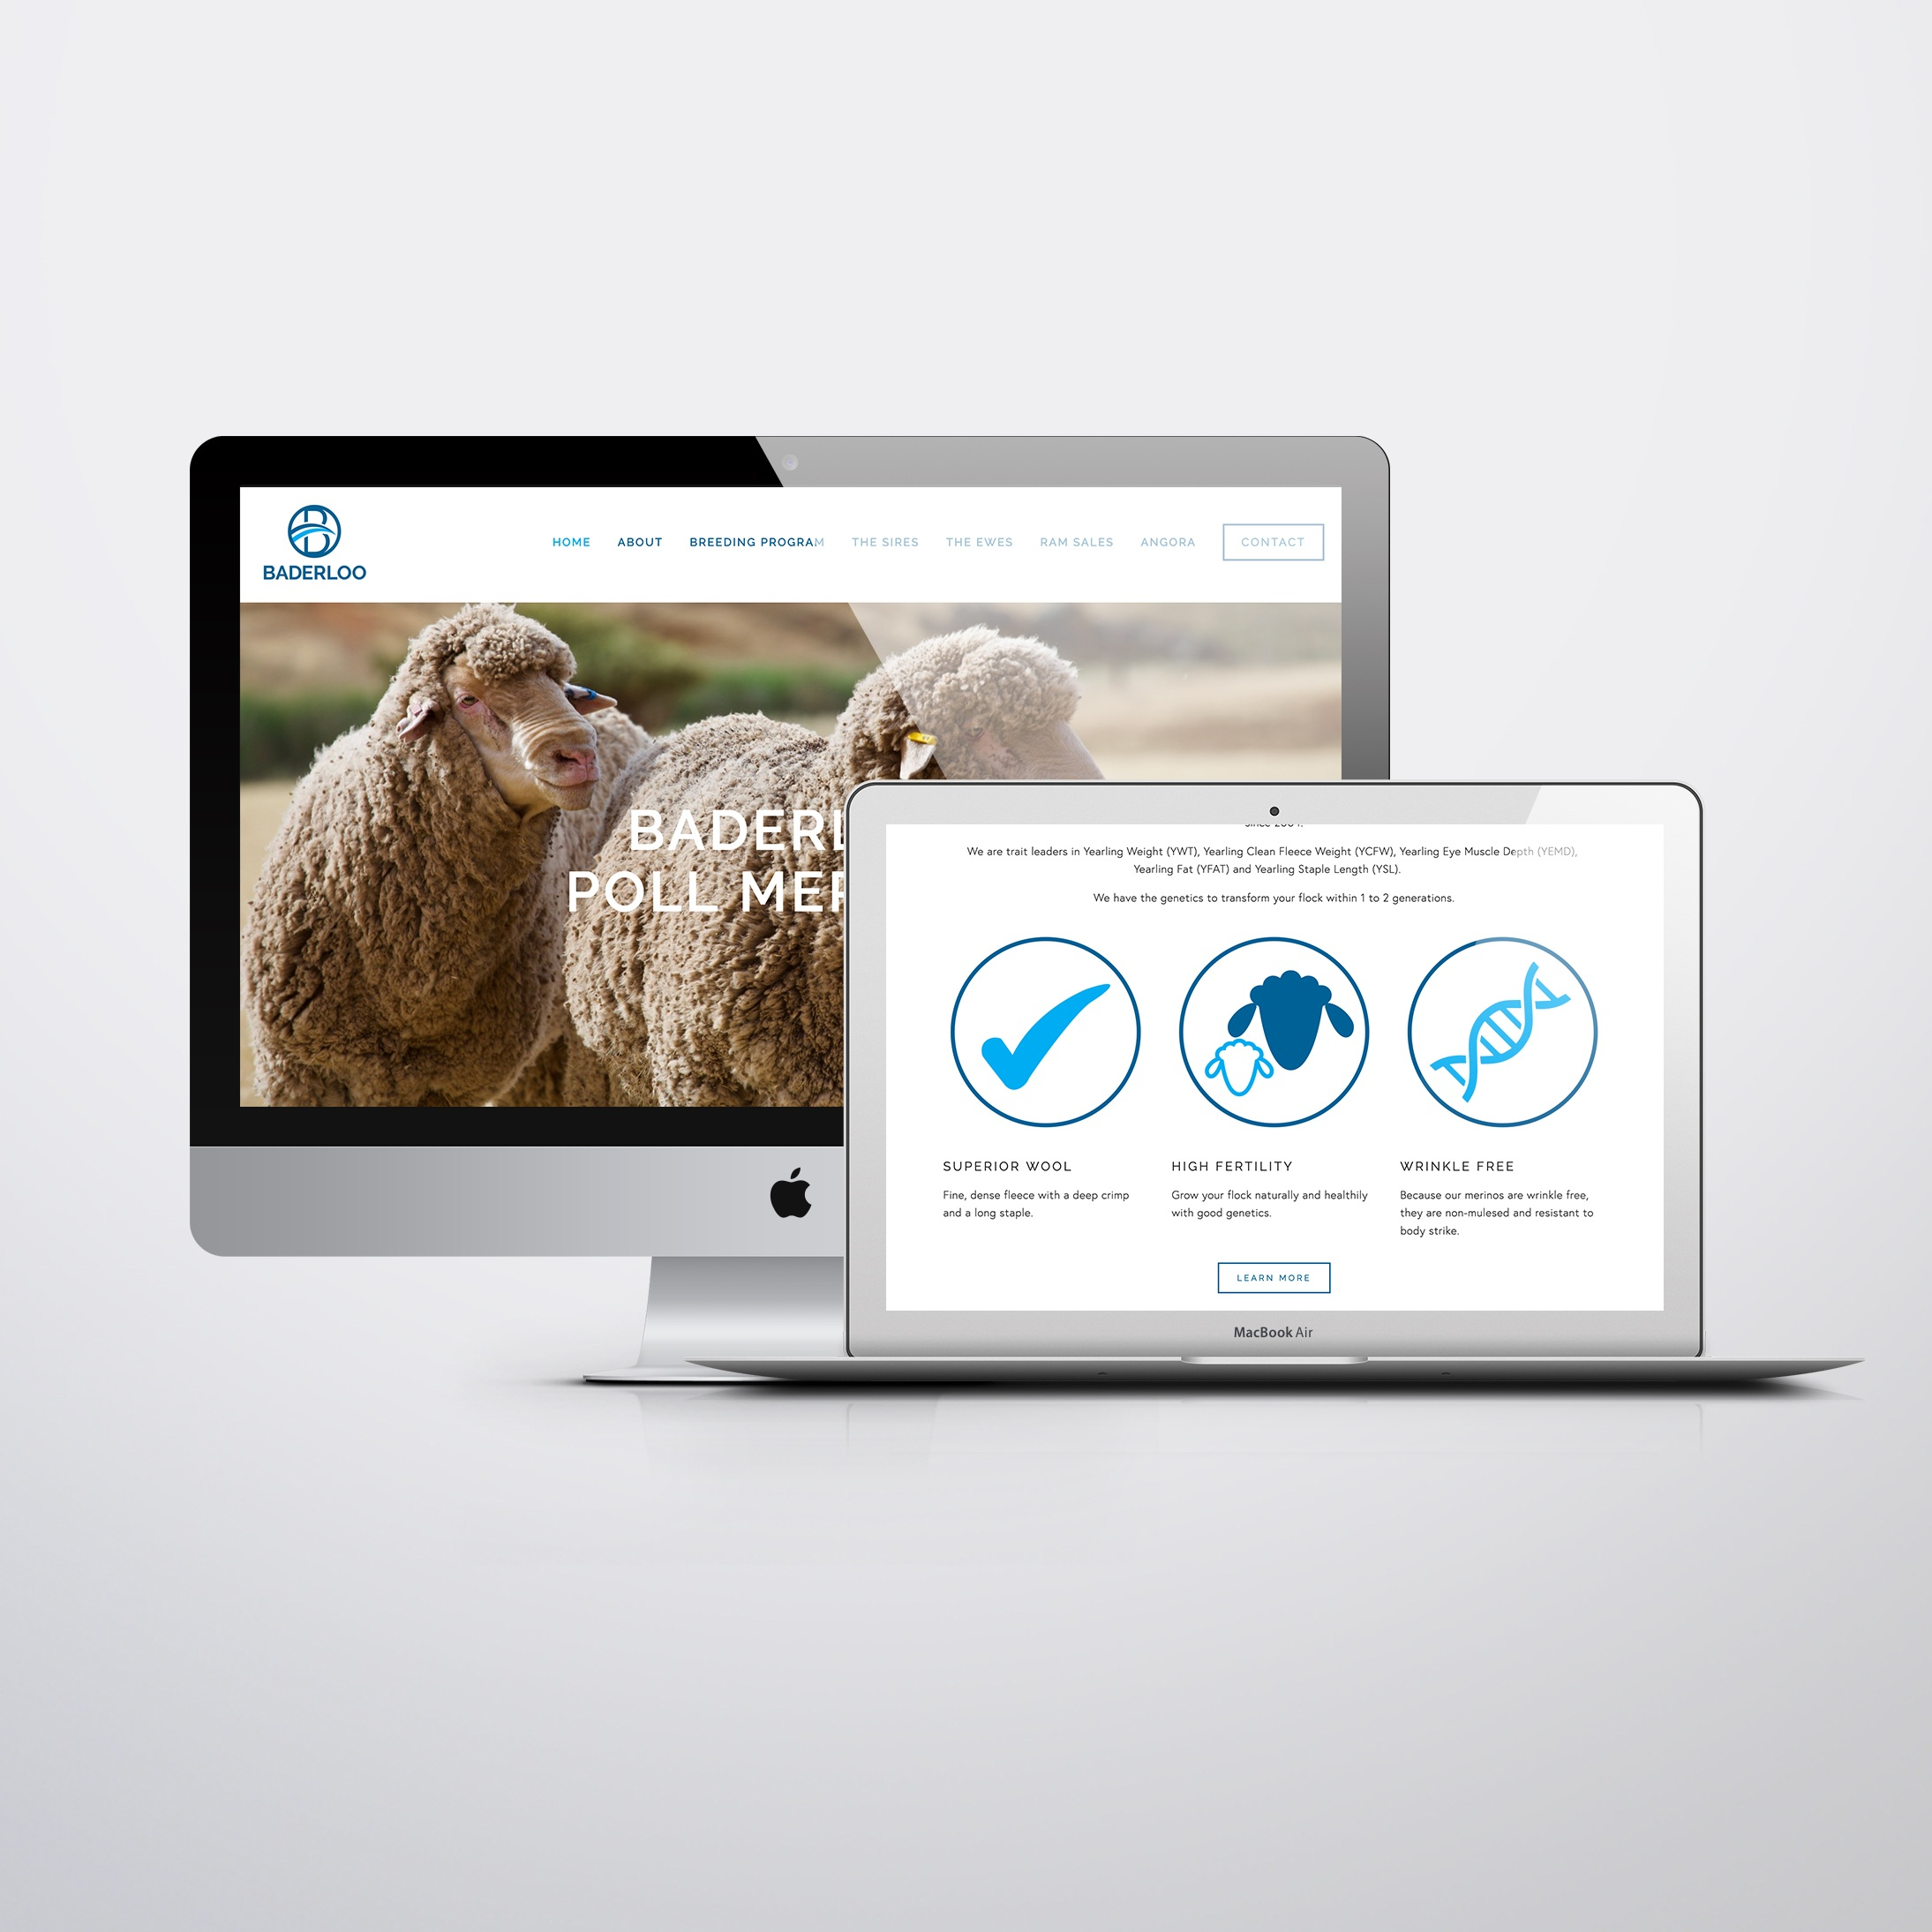 BADERLOO MERINOS - Web design & build in Squarespace, SEO, web contentAgency: Faction Co.